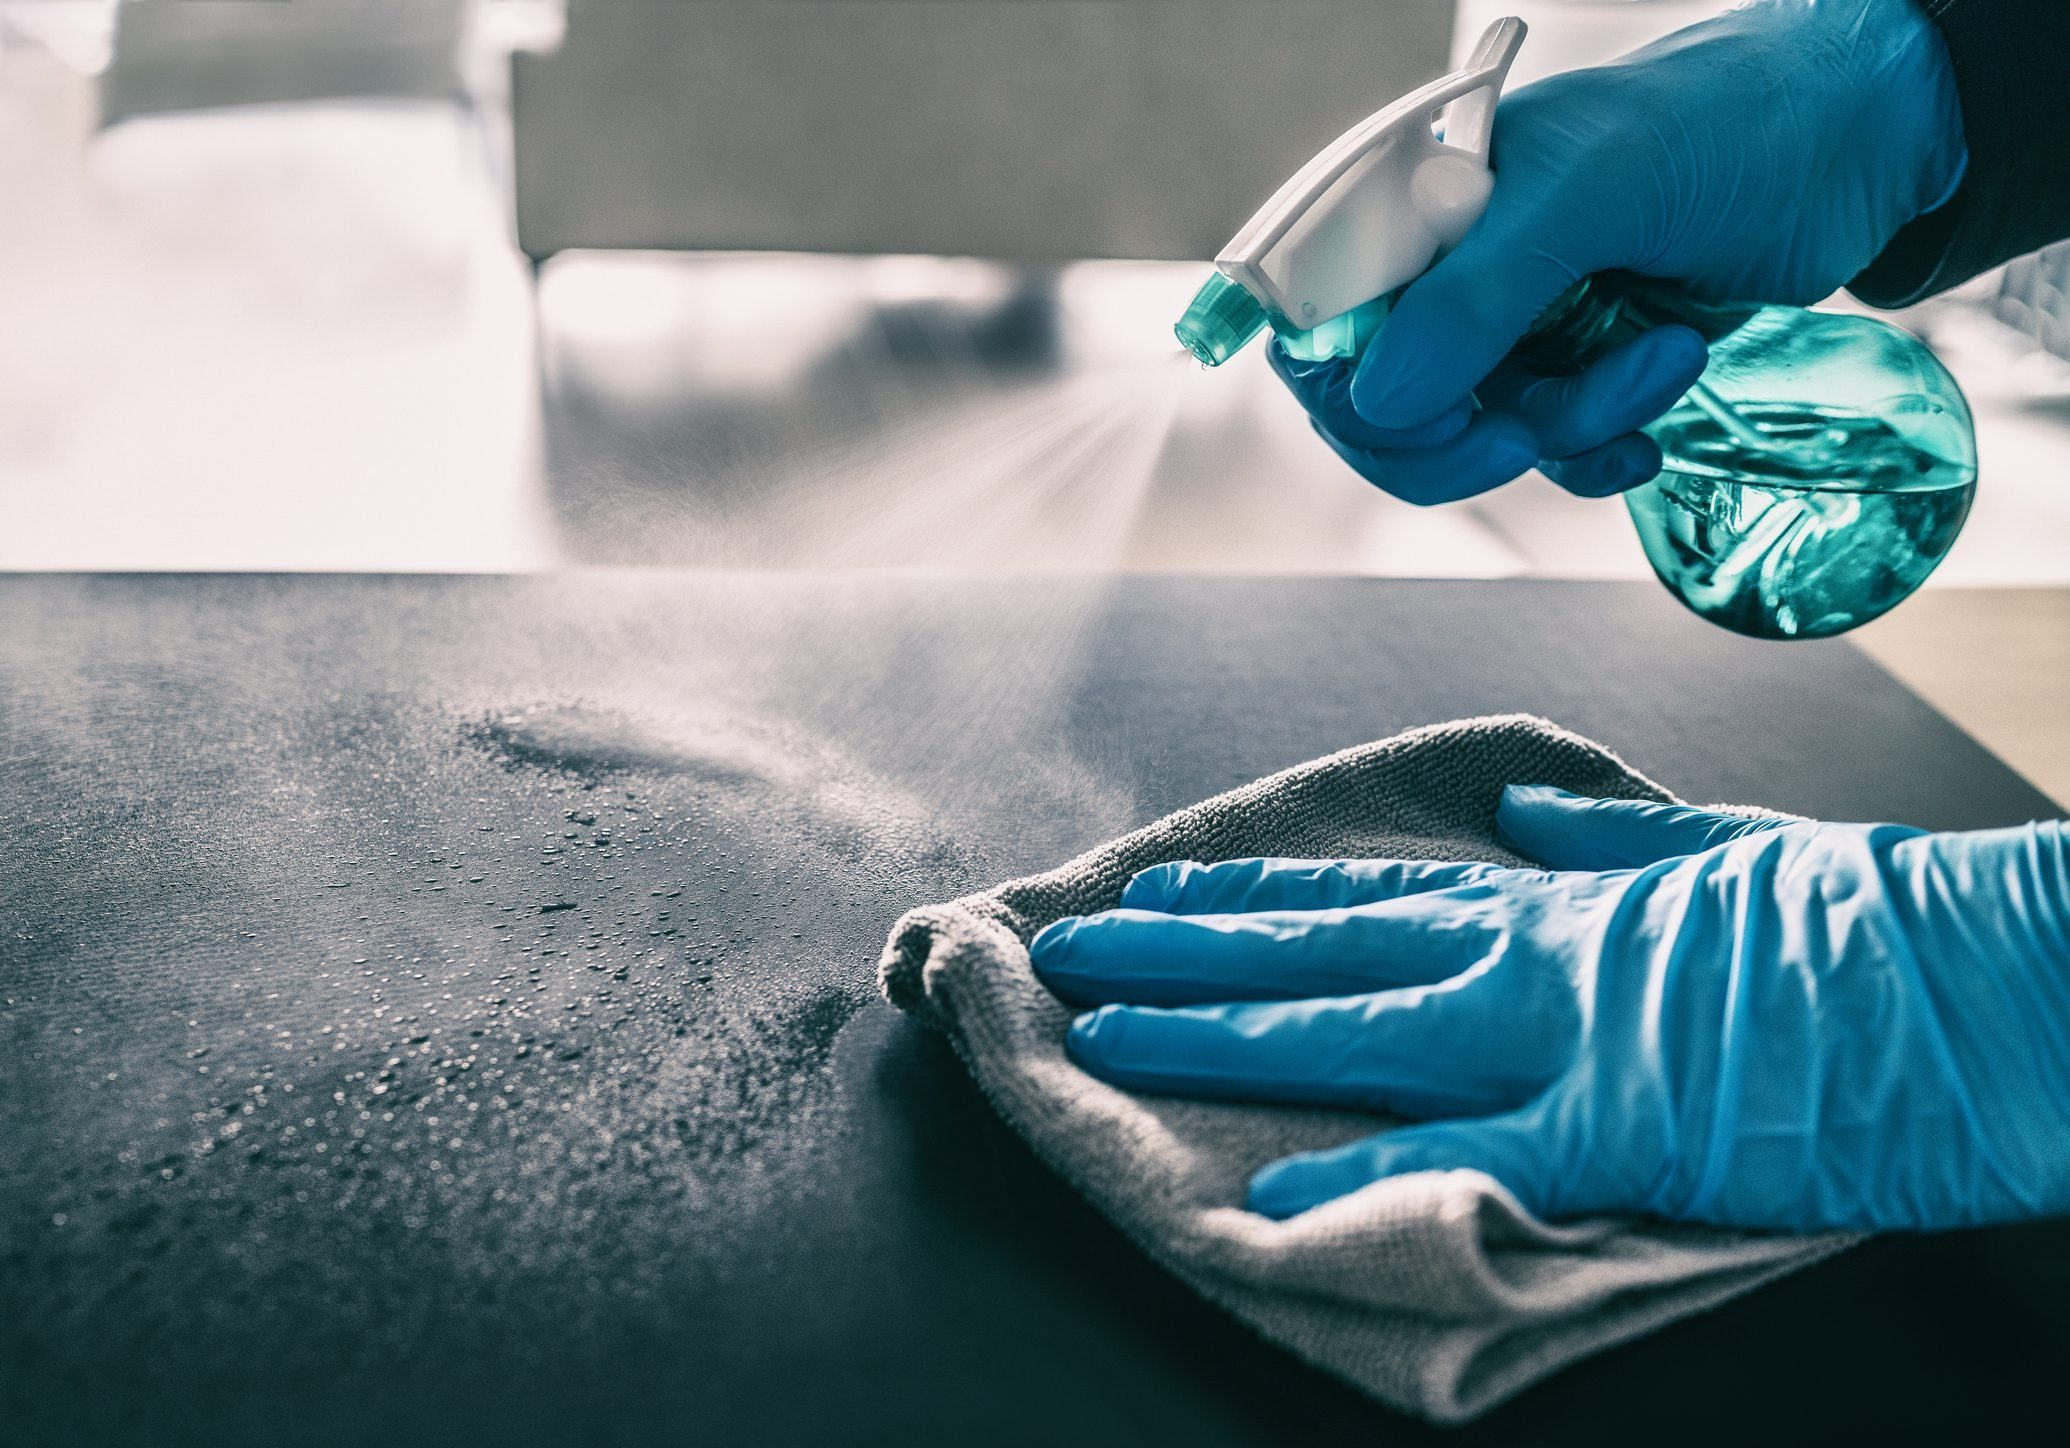 Surface sanitizing against COVID-19 outbreak. Home cleaning spraying antibacterial spray bottle disinfecting against coronavirus wearing nitrile gloves. Sanitize hospital surfaces prevention